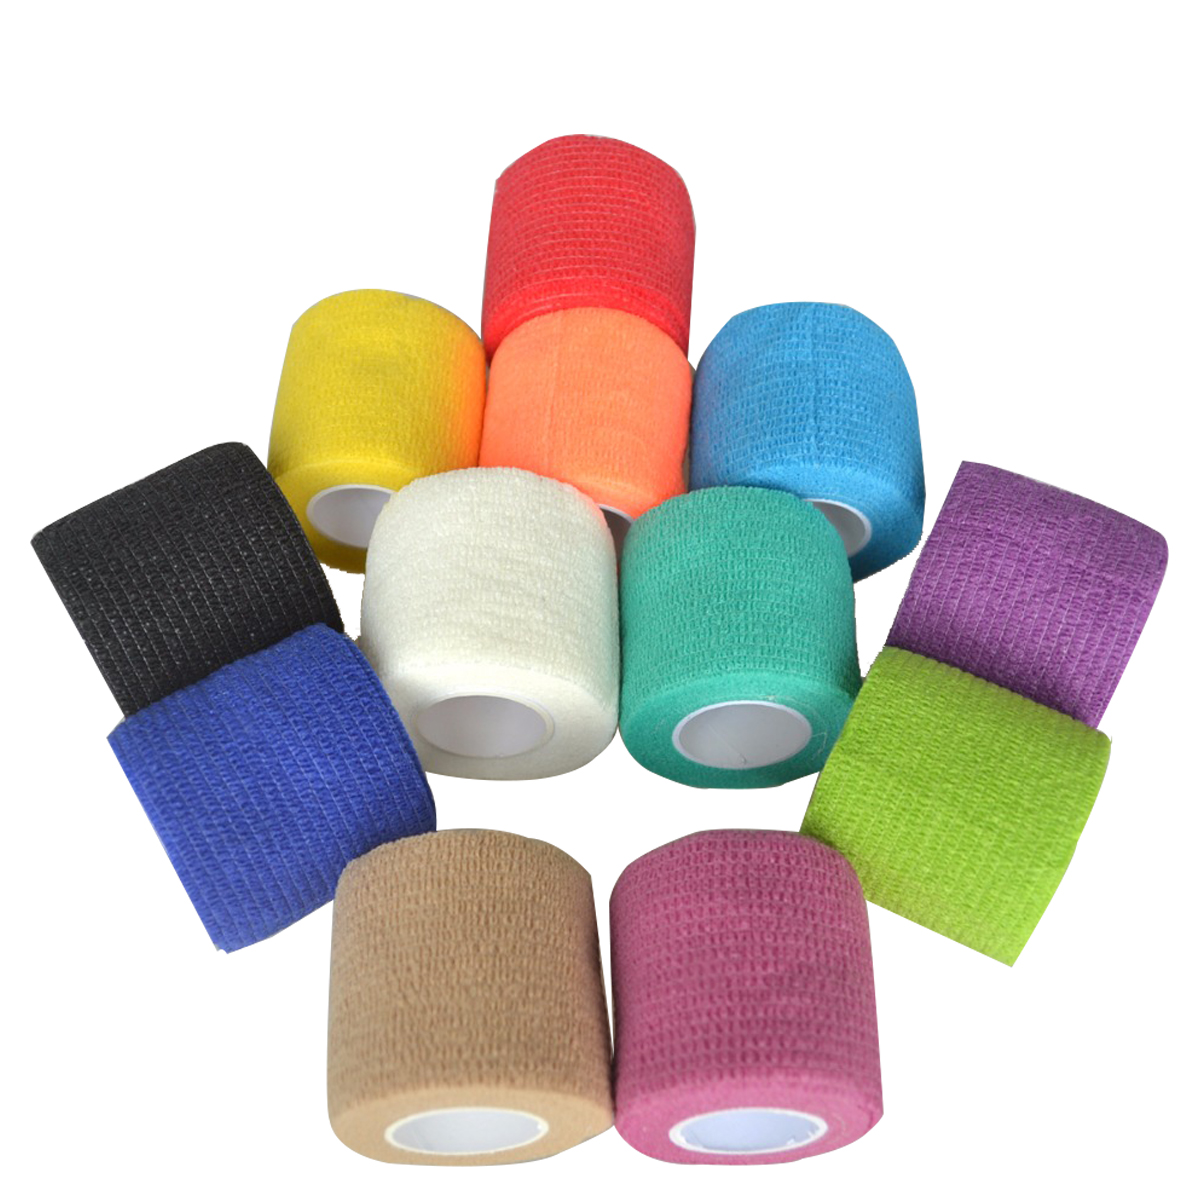 24Pcs/Lot Security Protection CE/FDA Certification Waterproof Breathable Bandage Self Adhesive Tape Body Joint Care 5cm*5m